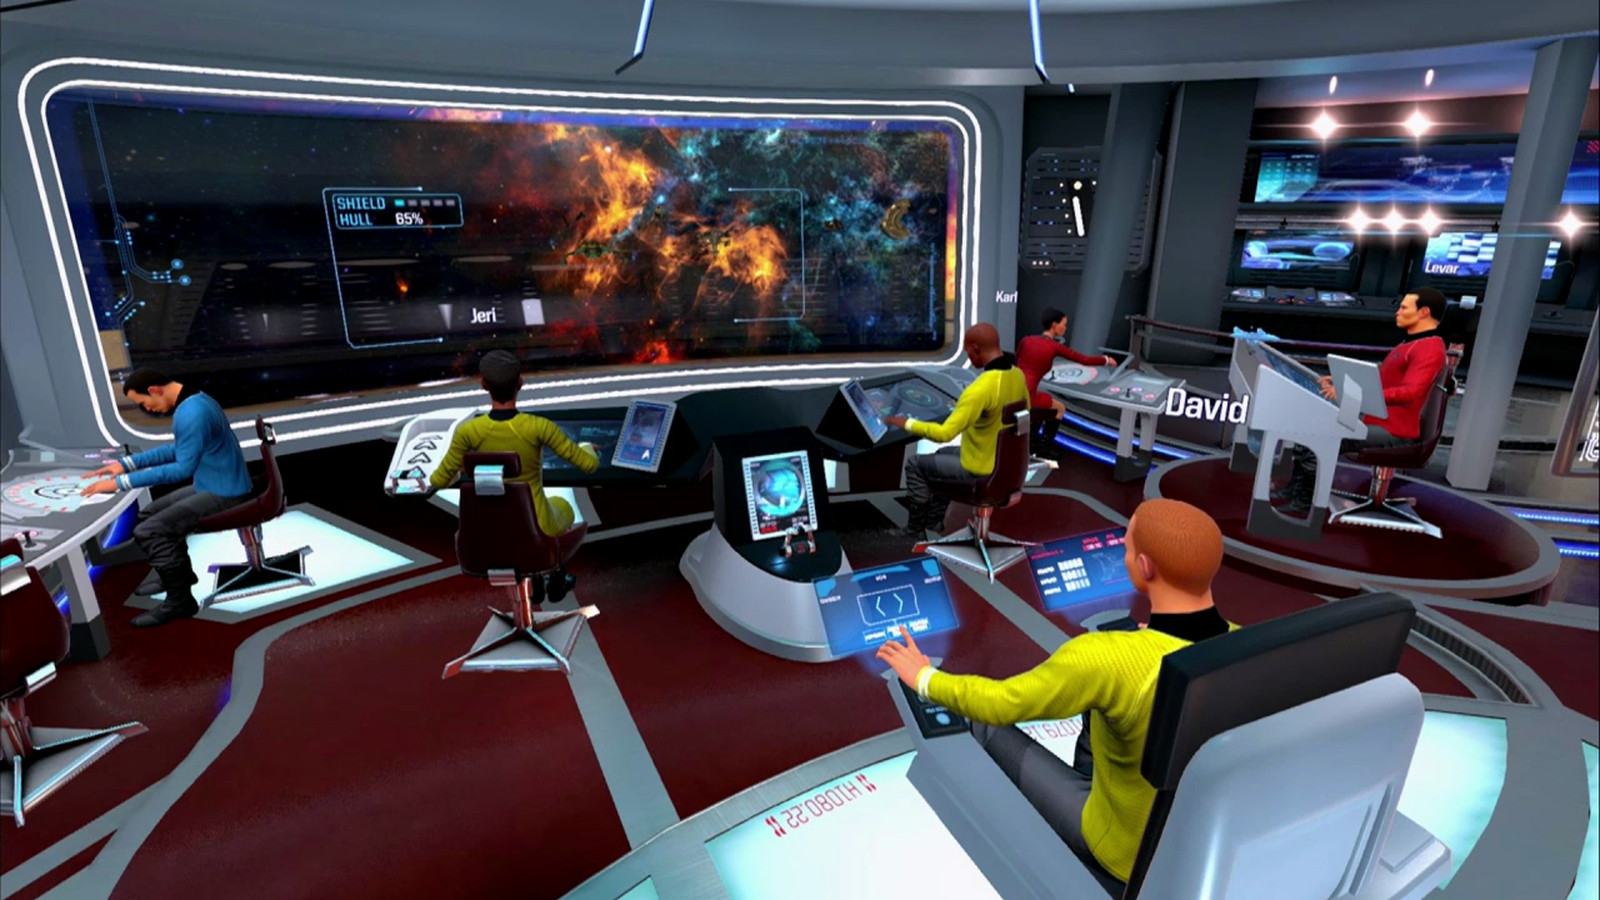 watch starfleet veterans play star trek 39 s vr game bridge crew polygon. Black Bedroom Furniture Sets. Home Design Ideas